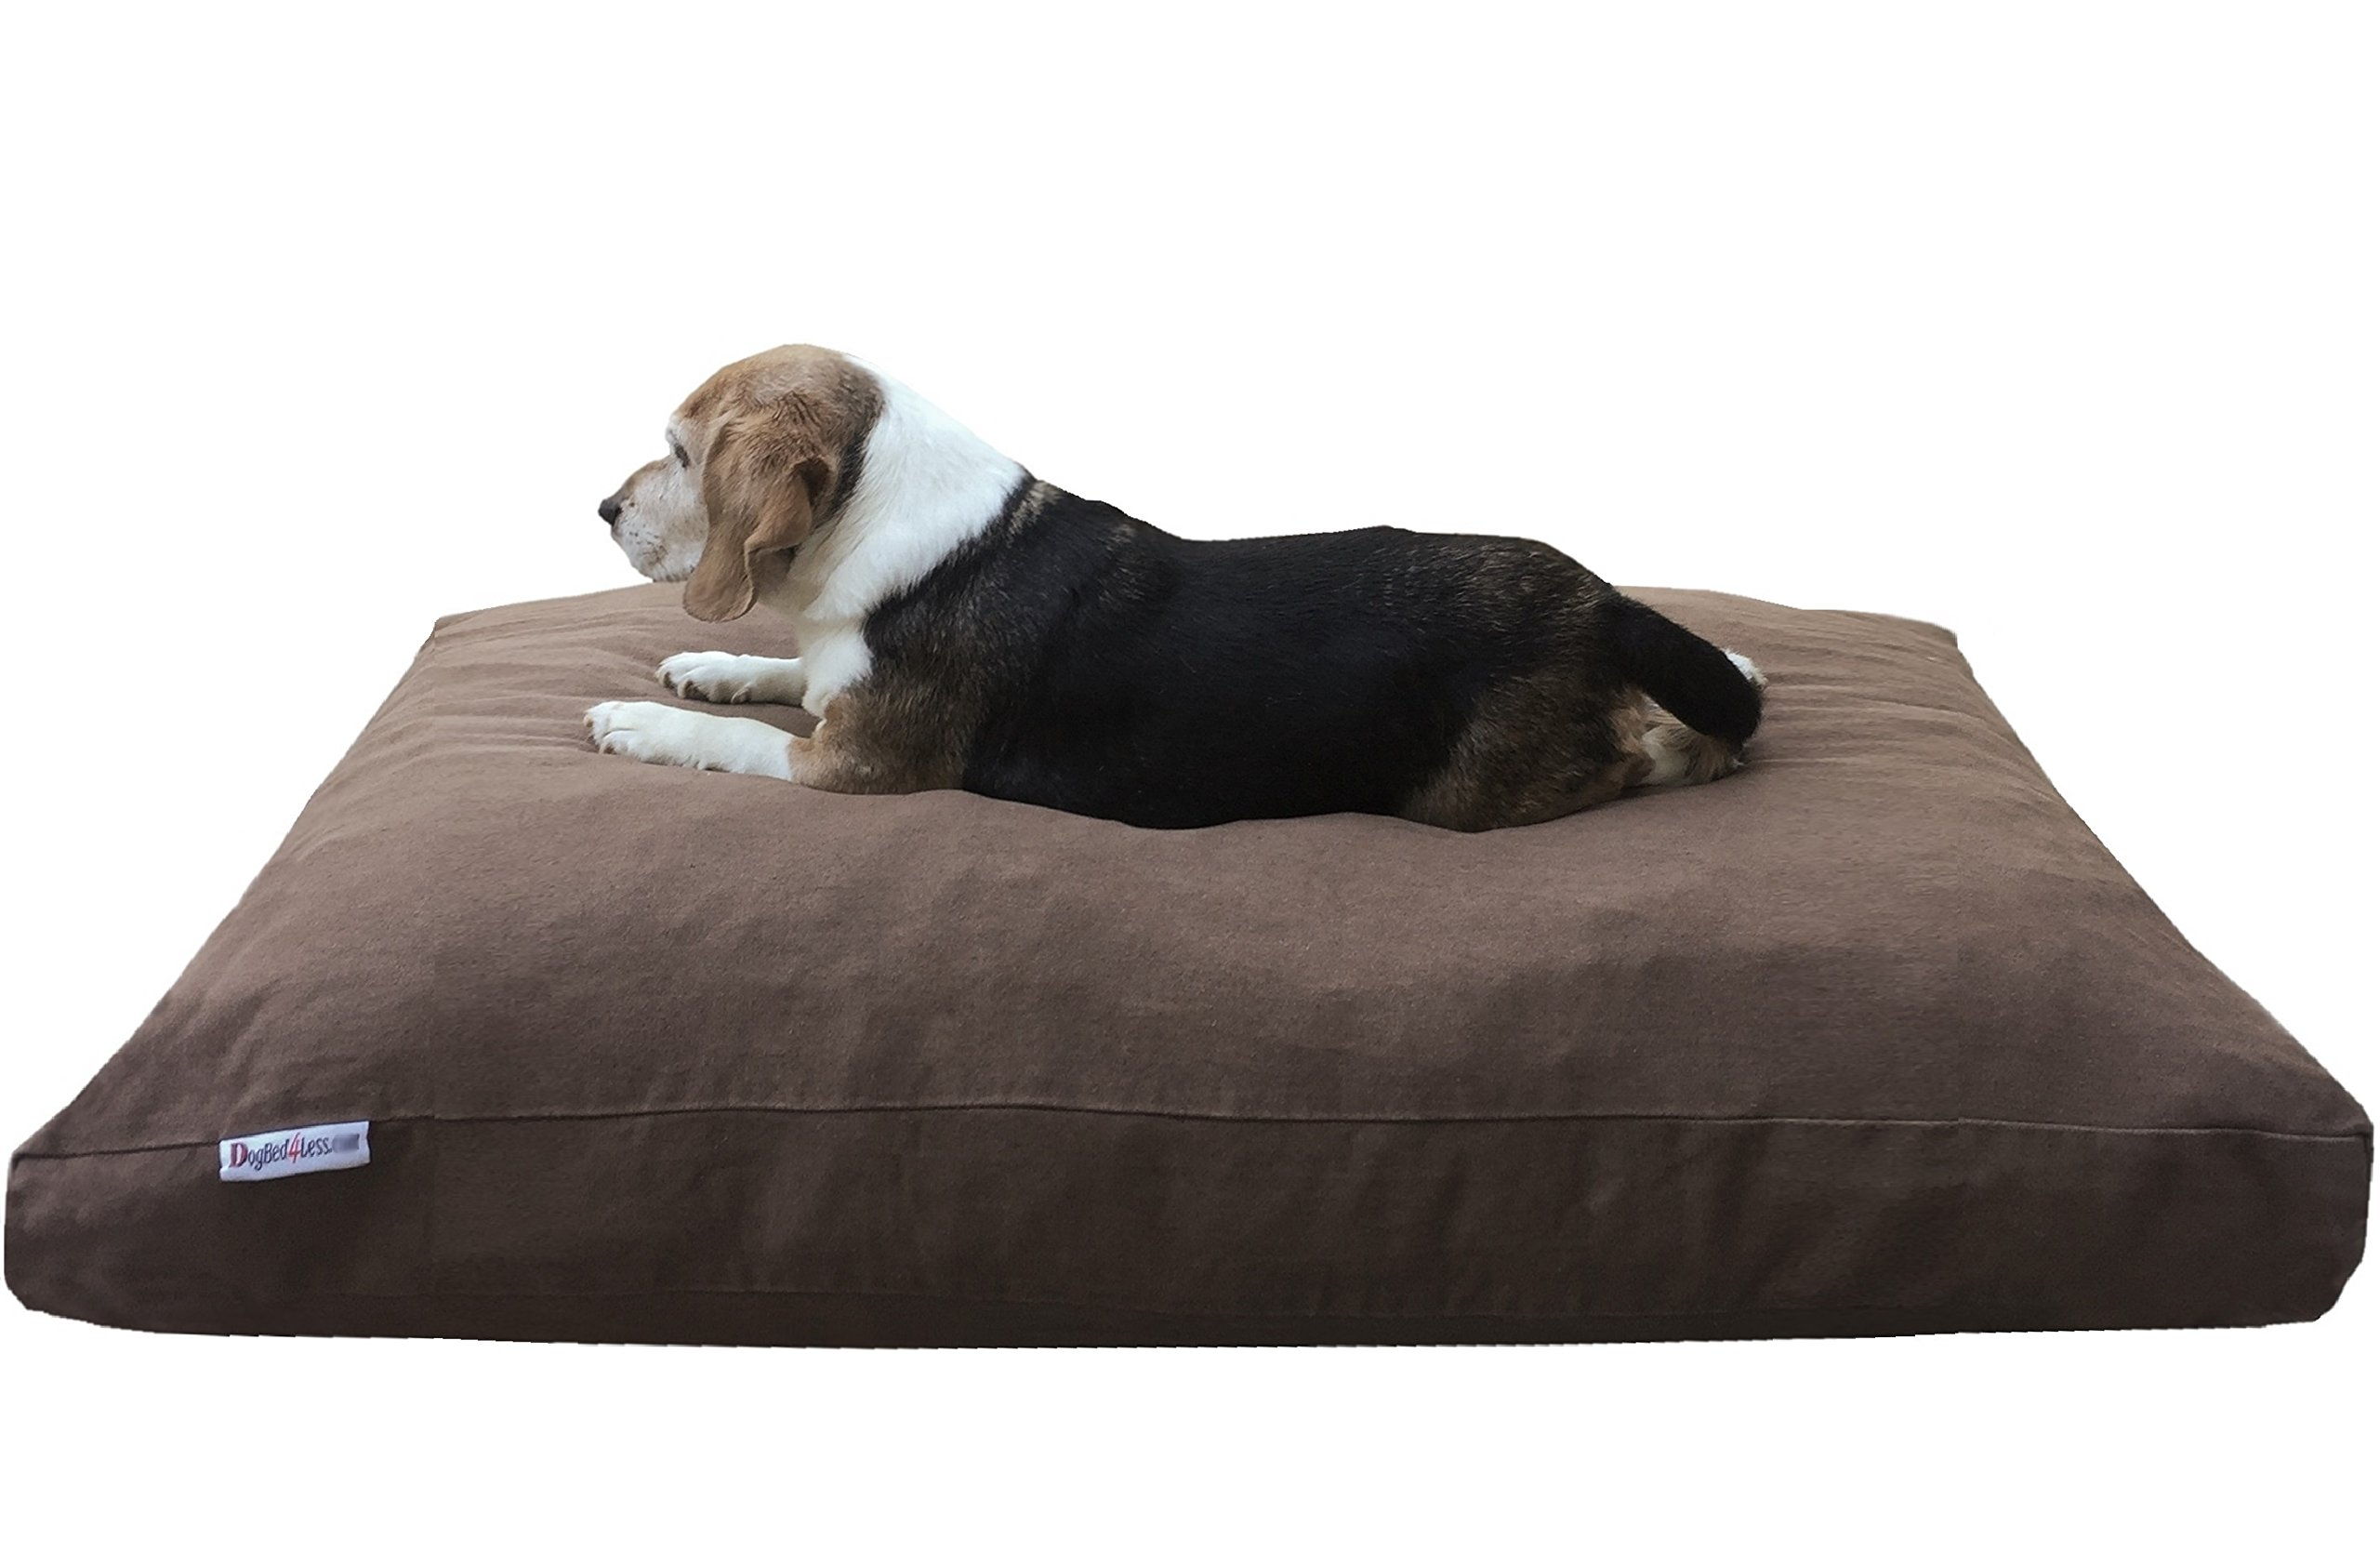 Dogbed4less Extra Large Memory Foam Dog Bed Pillow with Orthopedic Comfort + Waterproof Liner and Durable Pet Bed Denim Cover 47''X29'', Brown